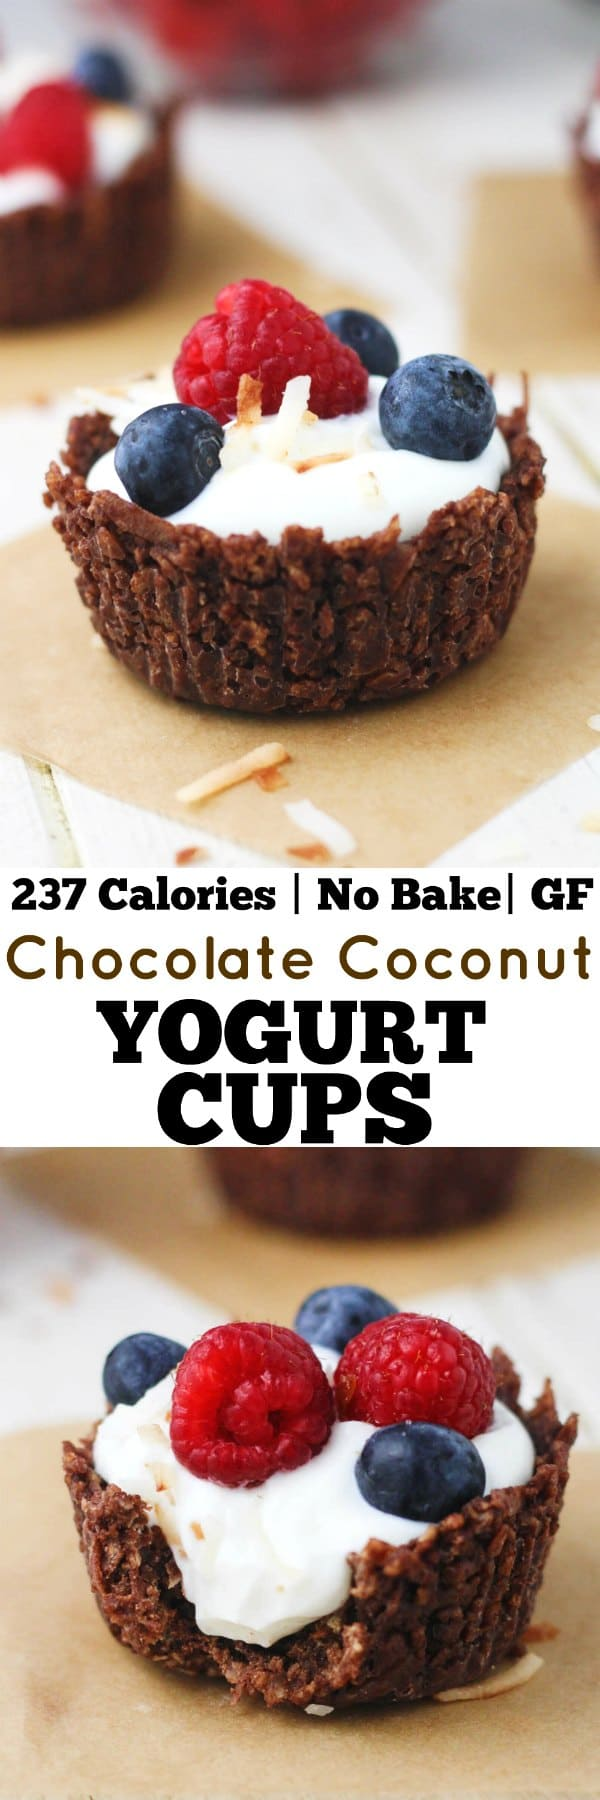 These No Bake Chocolate Coconut Yogurt Cups are guilt AND gluten free! Perfect for summer entertaining. www.itscheatdayeveryday.com